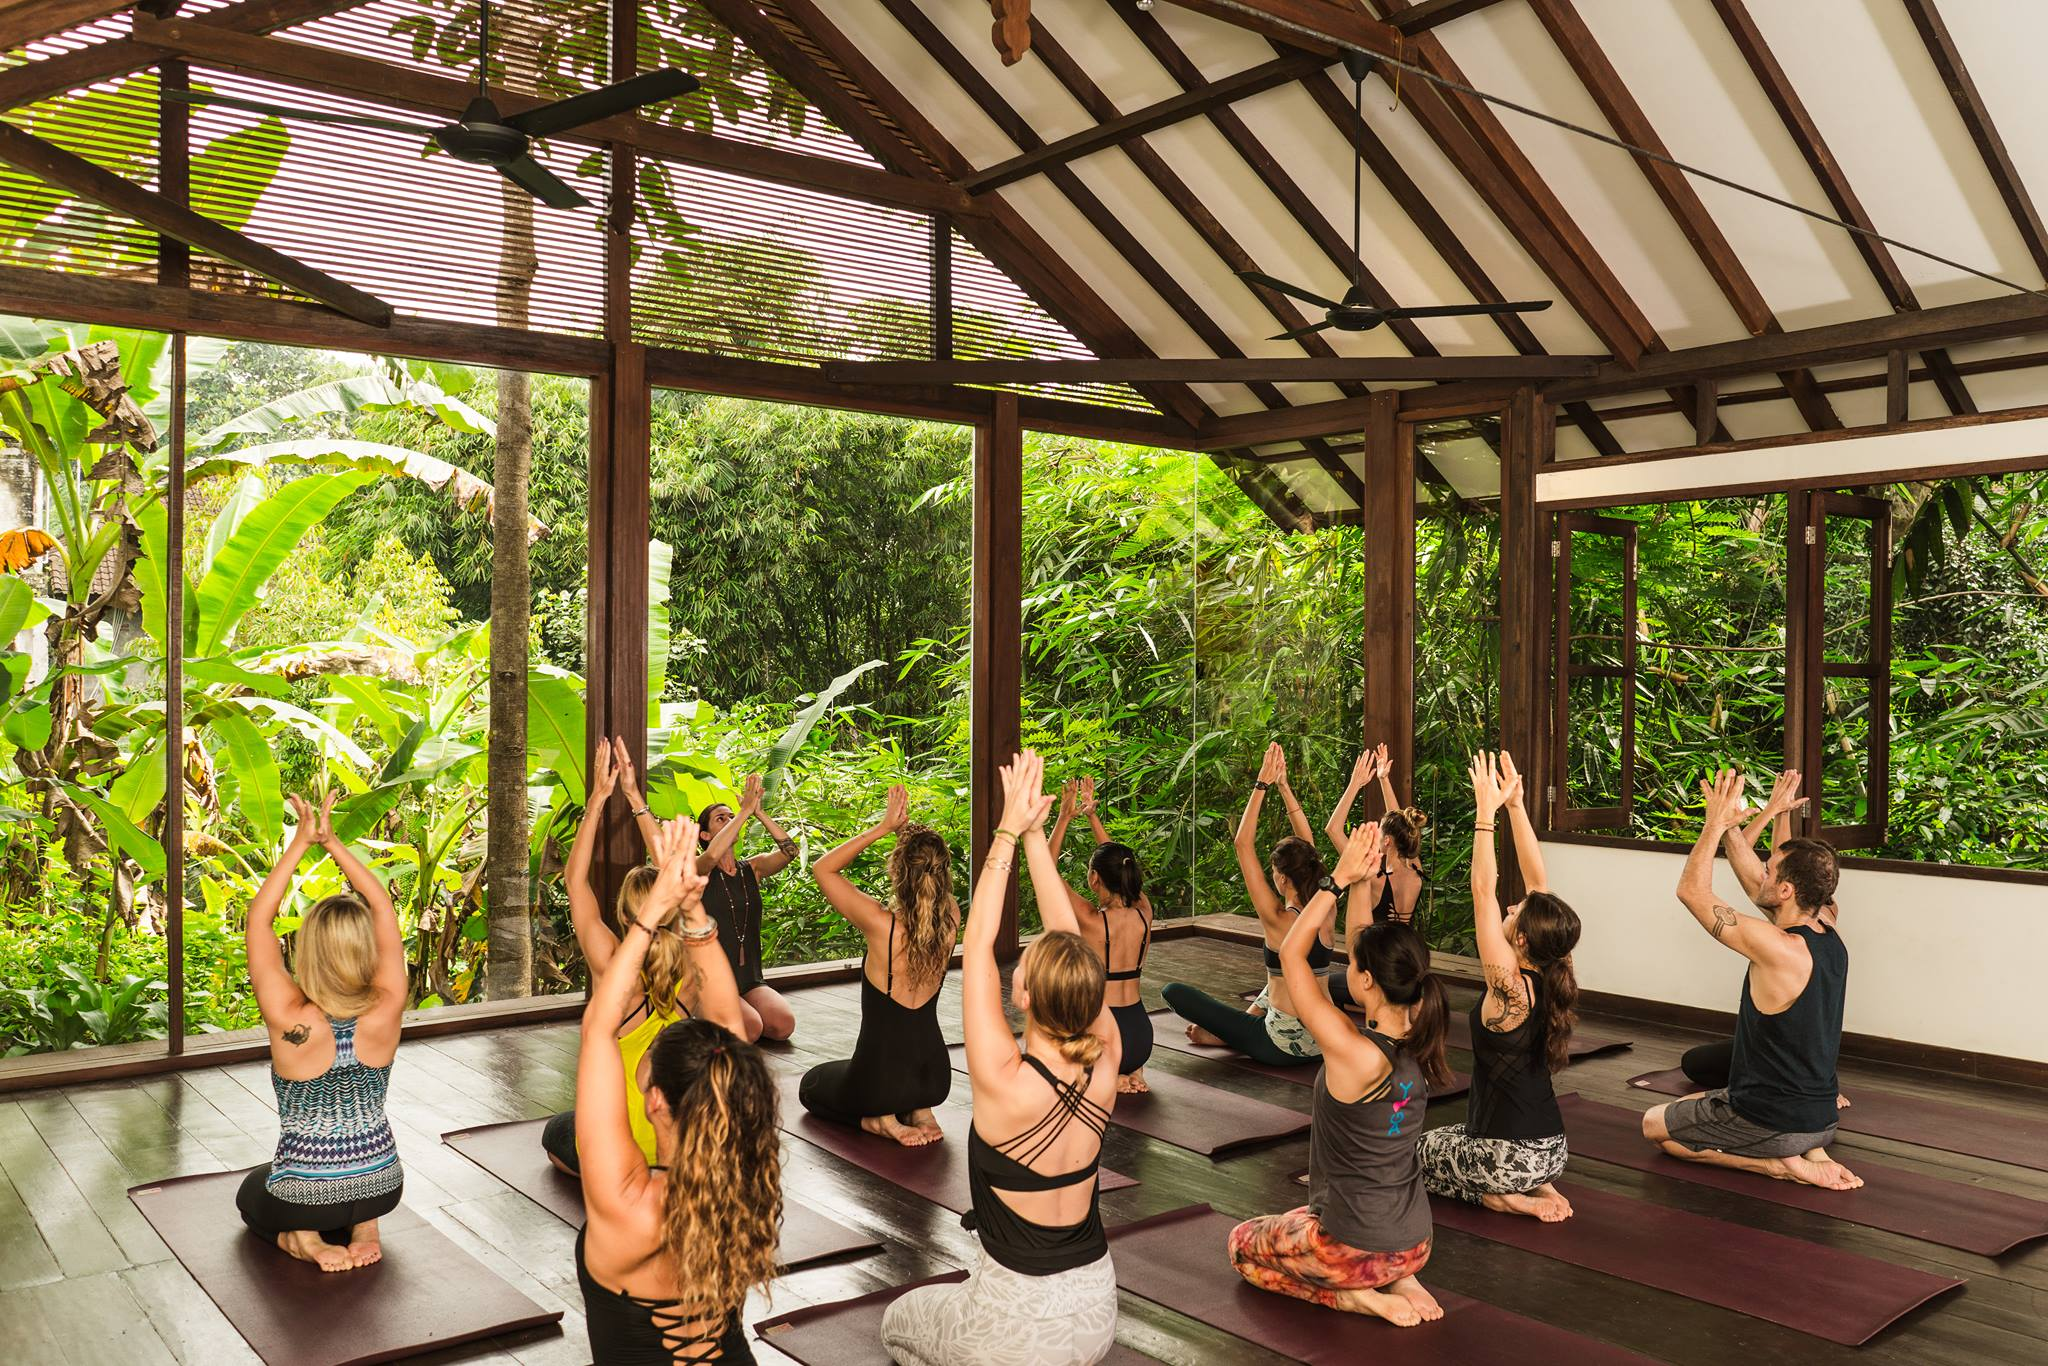 How to Find Your Internal Balance: Best Yoga Spots in Bali